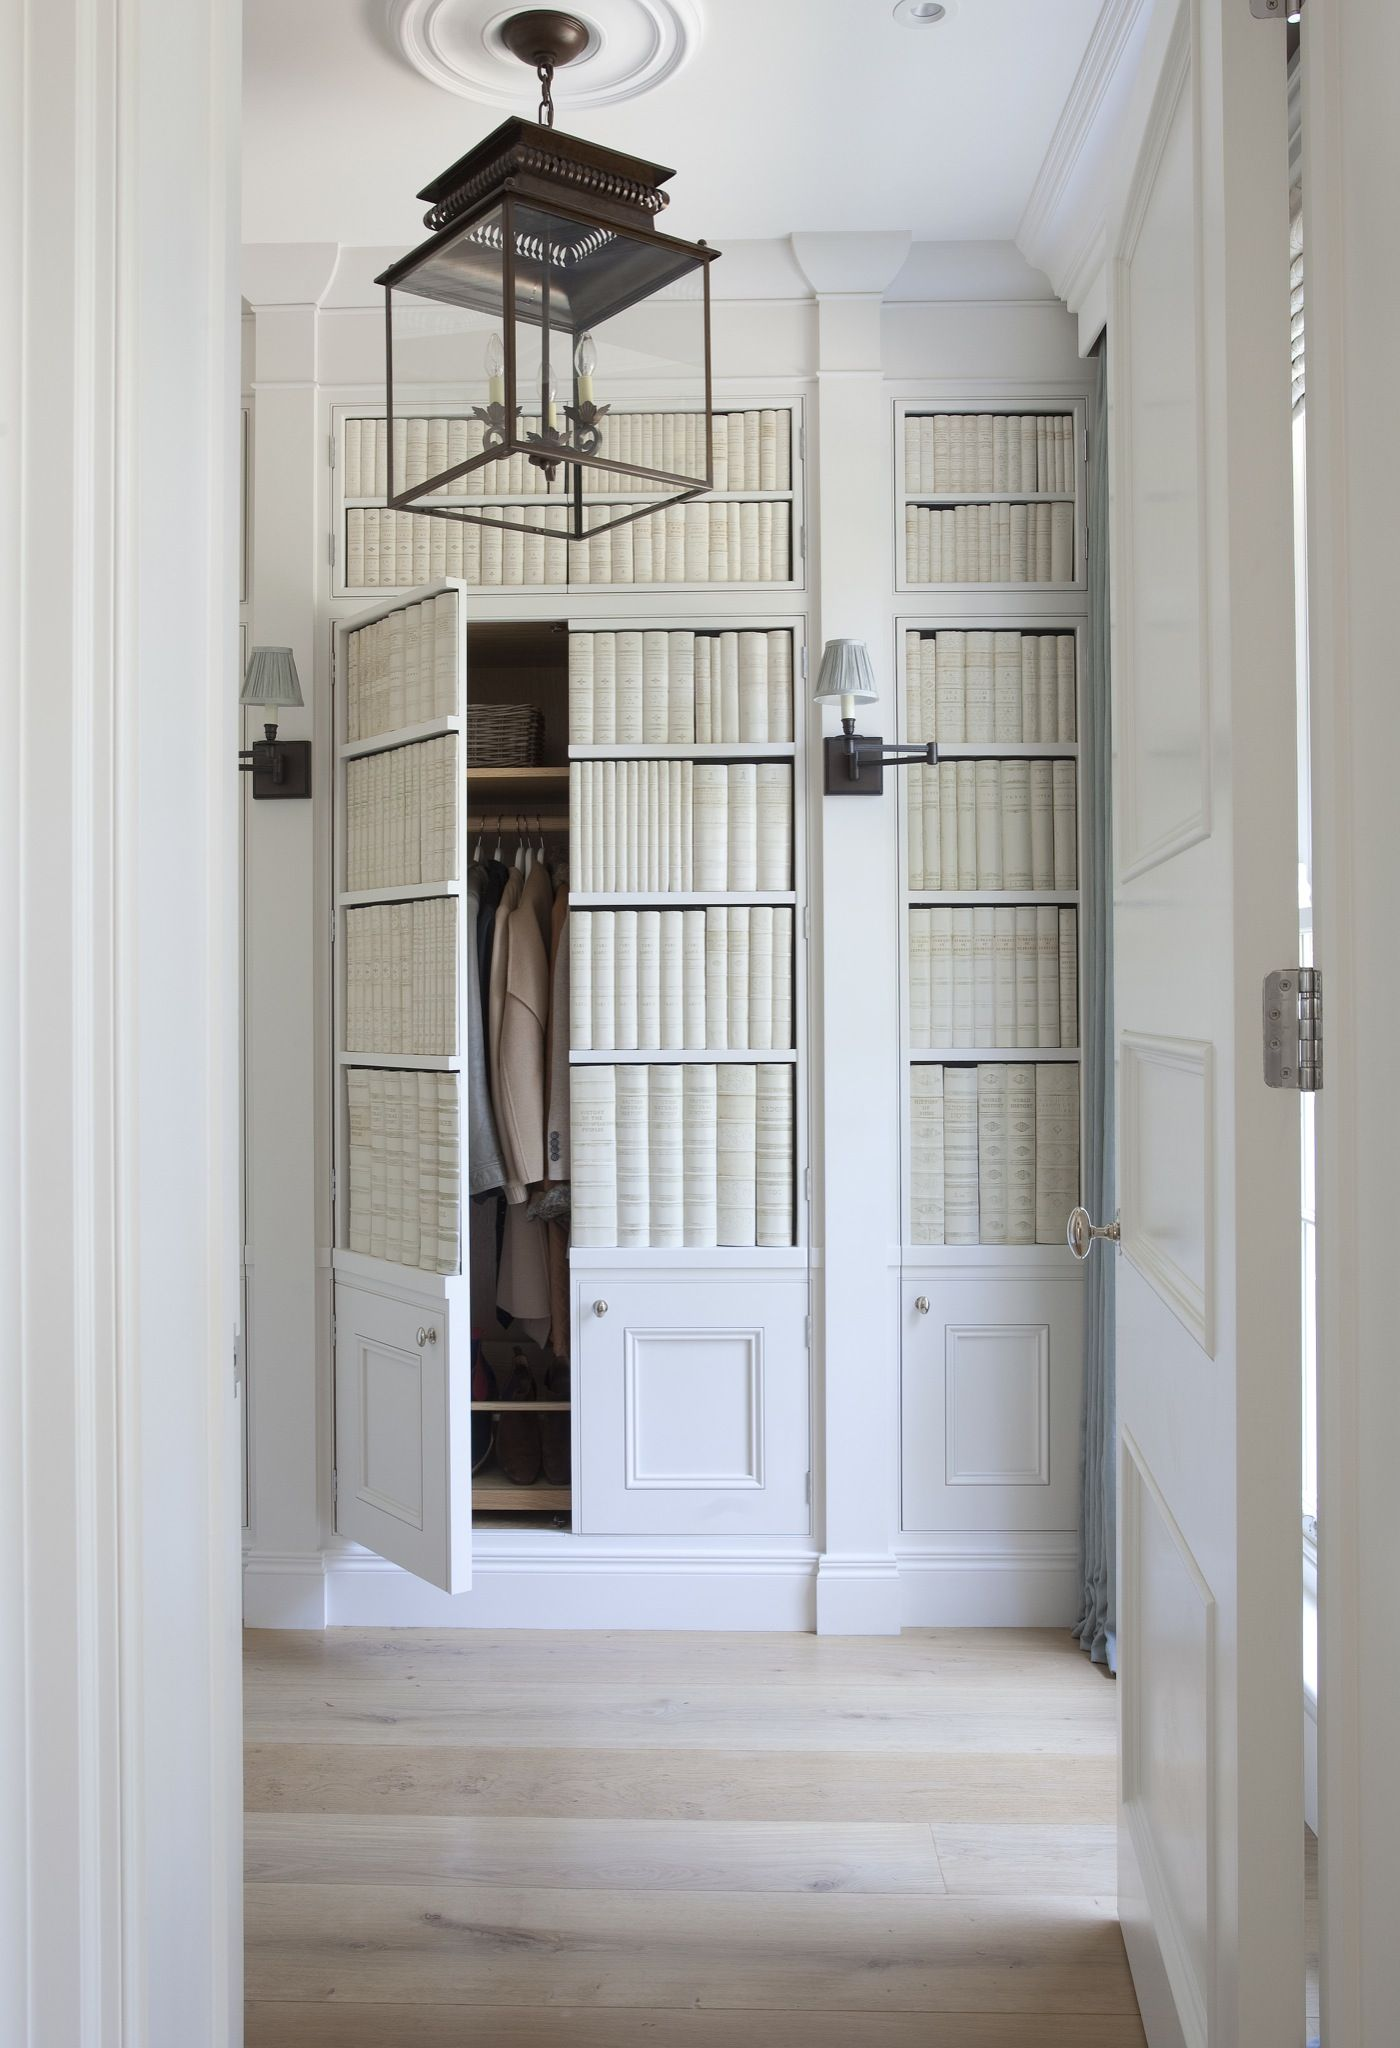 Concealed storage and coat closet space from this coastal style room